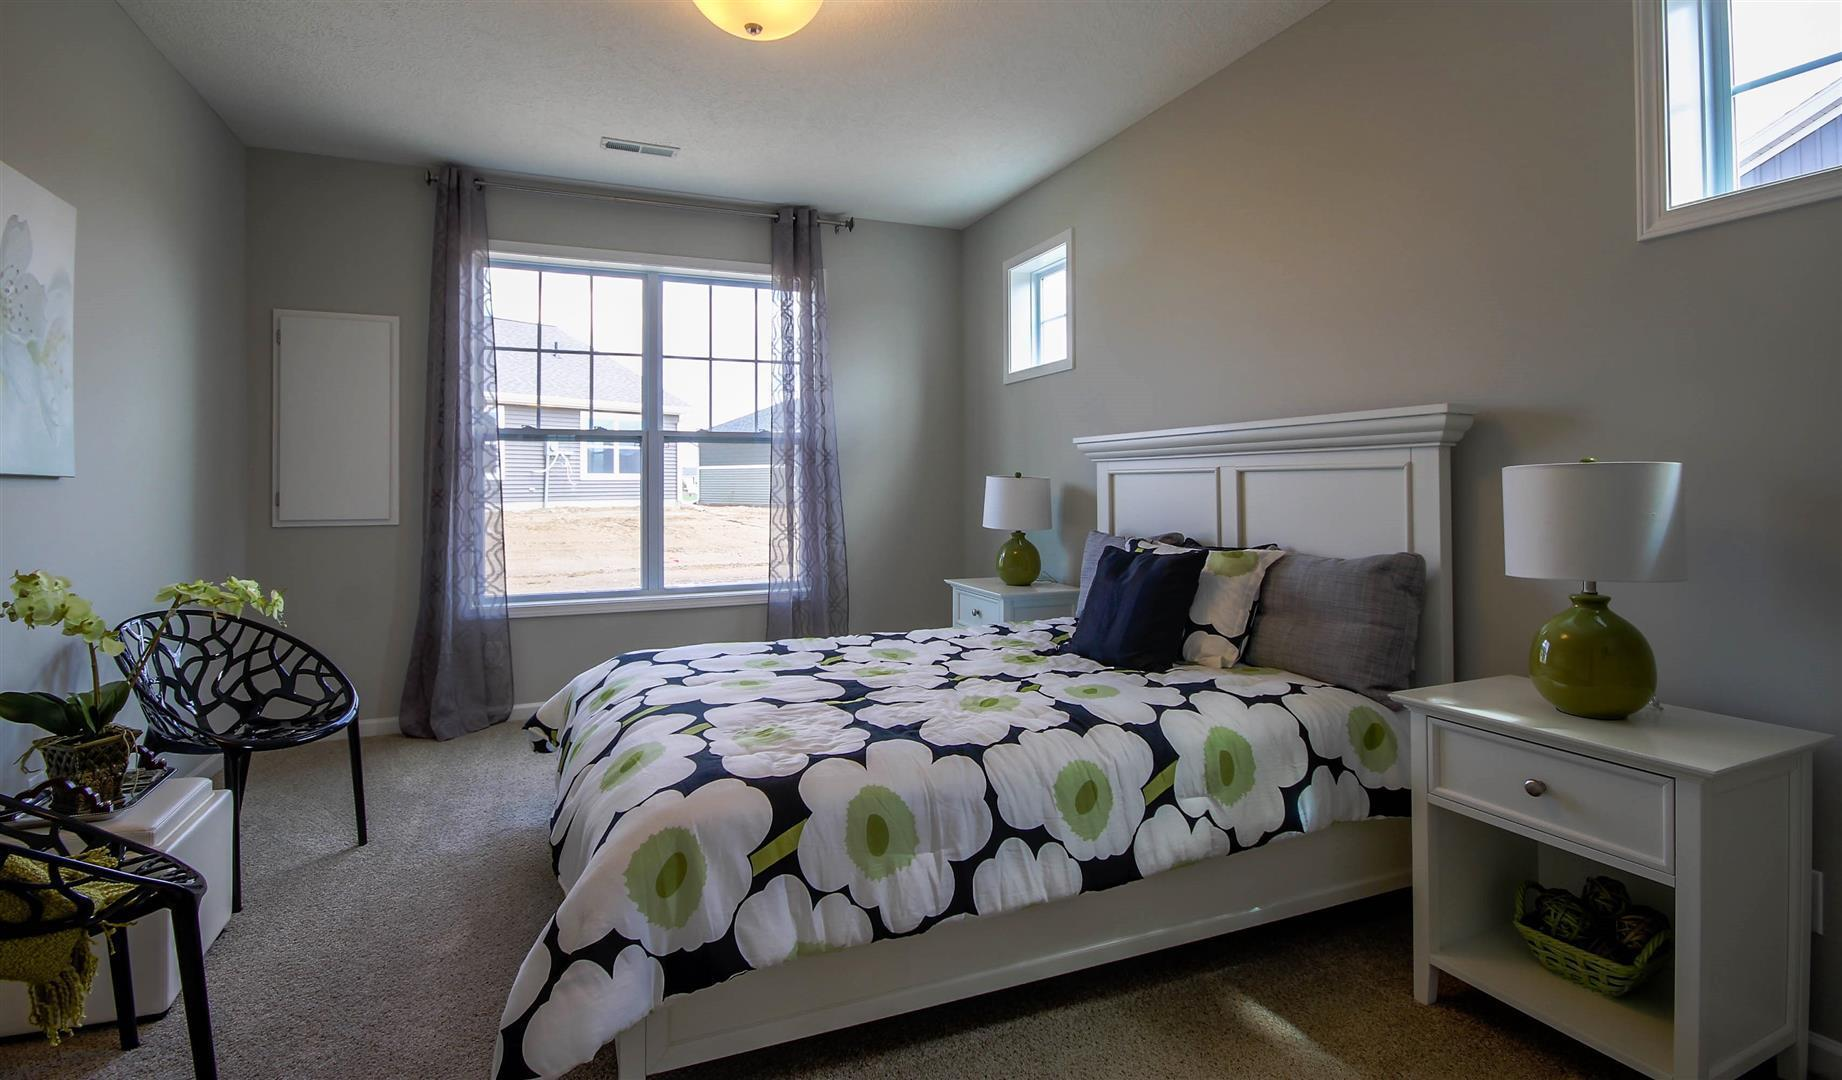 Bedroom featured in the Trenton By Mayberry Homes in Ann Arbor, MI